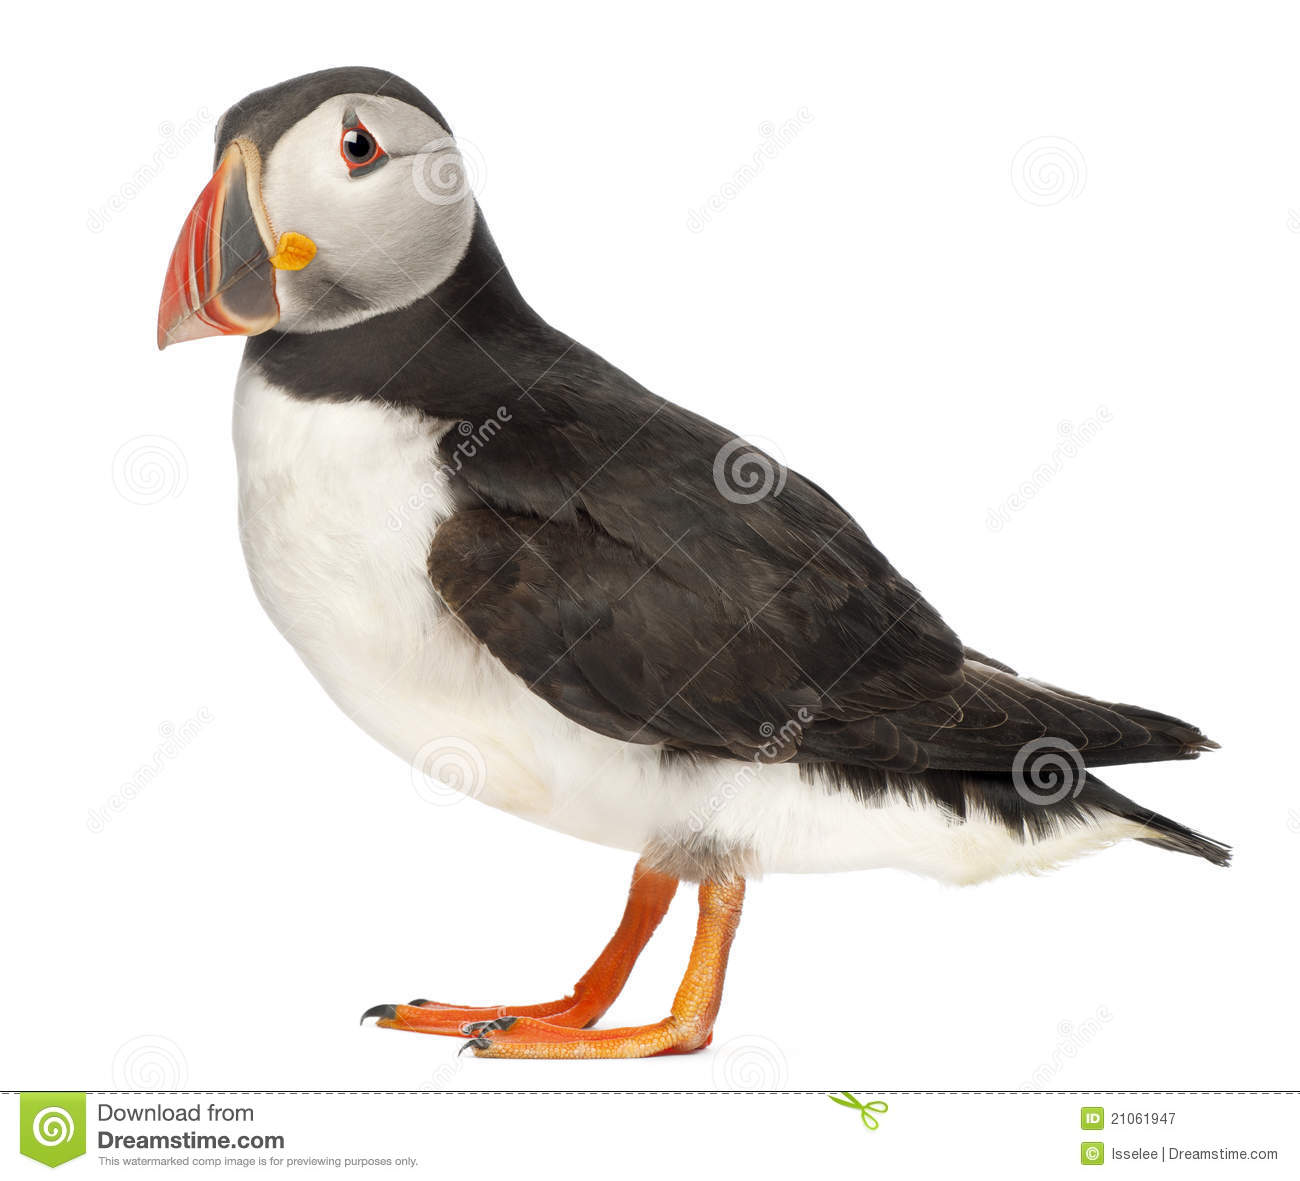 Atlantic Puffin clipart #8, Download drawings